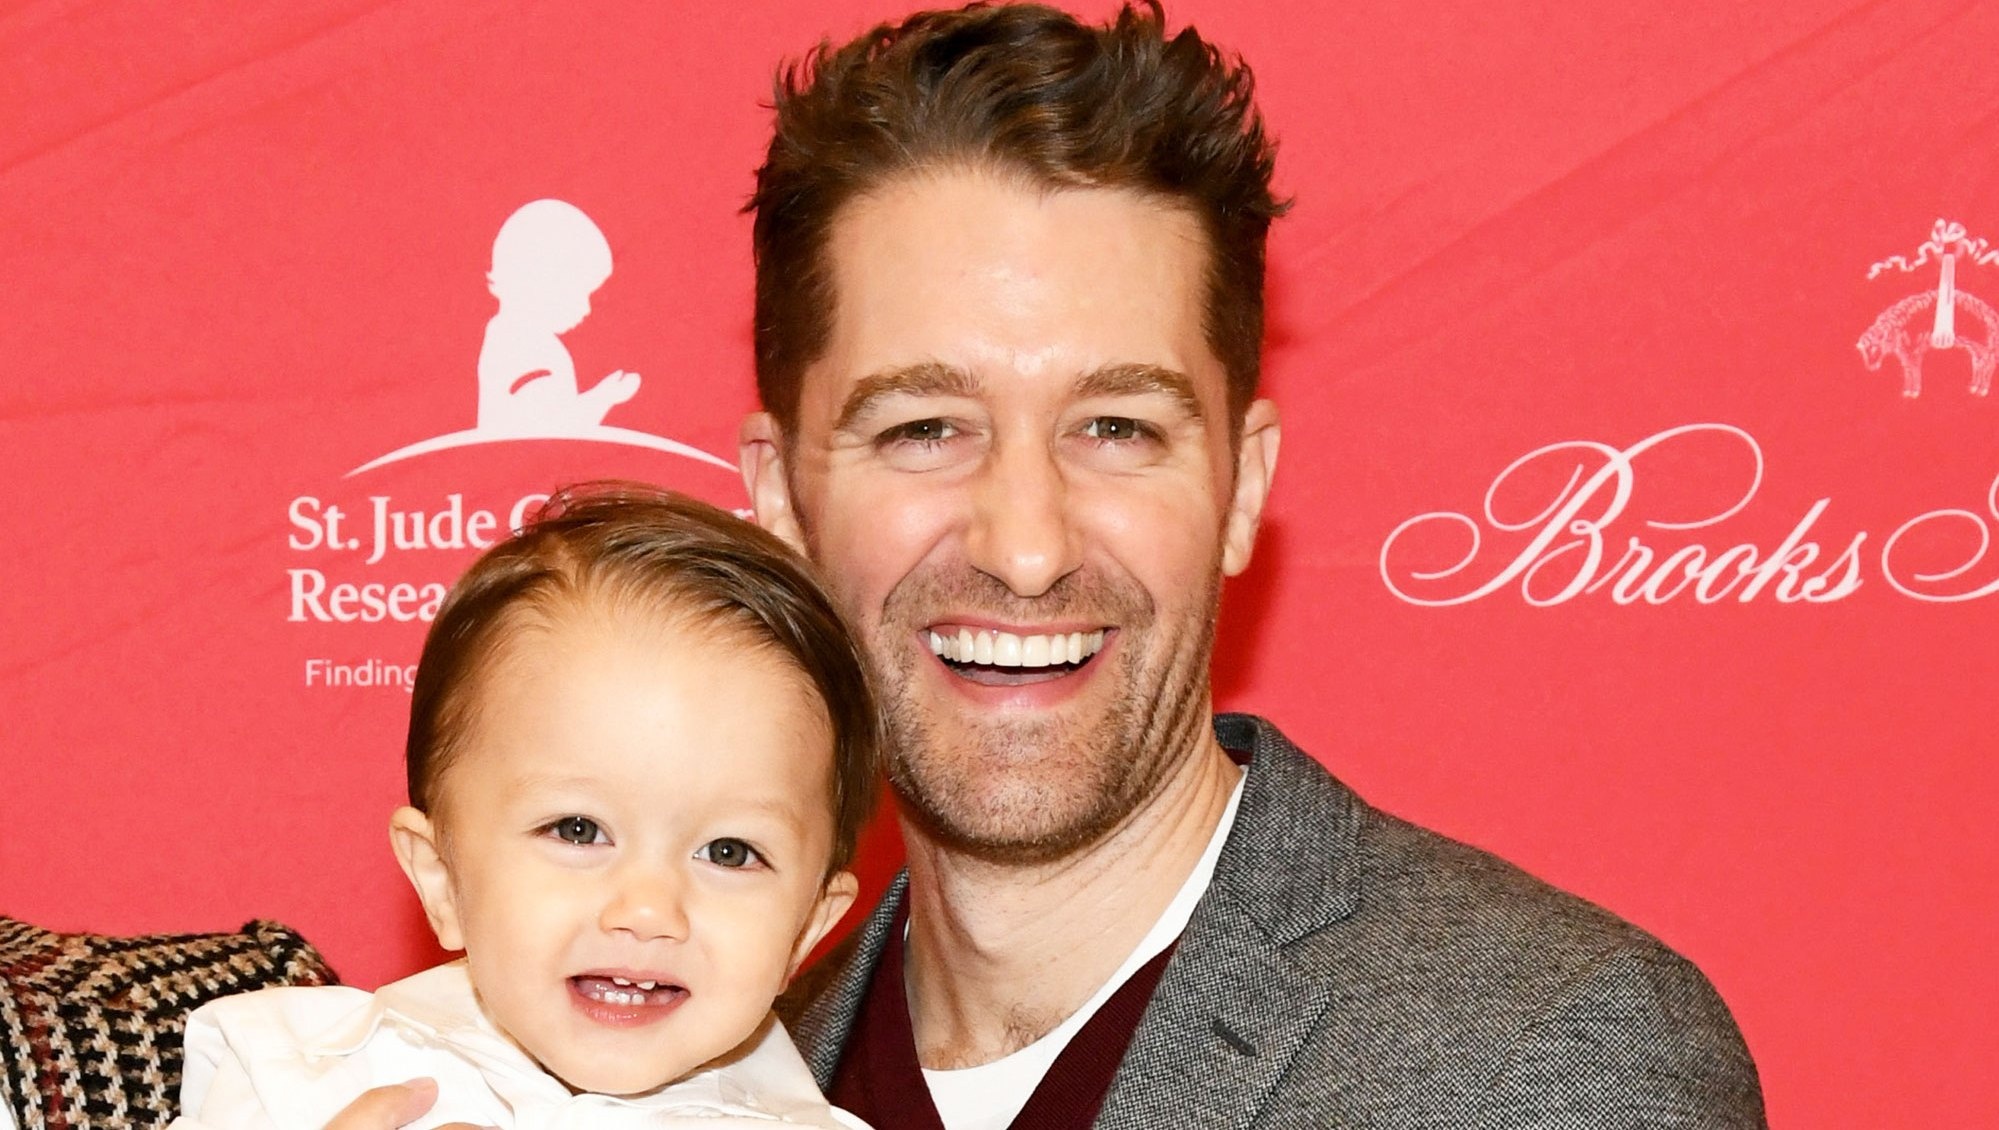 Matthew Morrison Reveals When He'll Let His Son Watch Him 'in His Prime' on 'Glee'